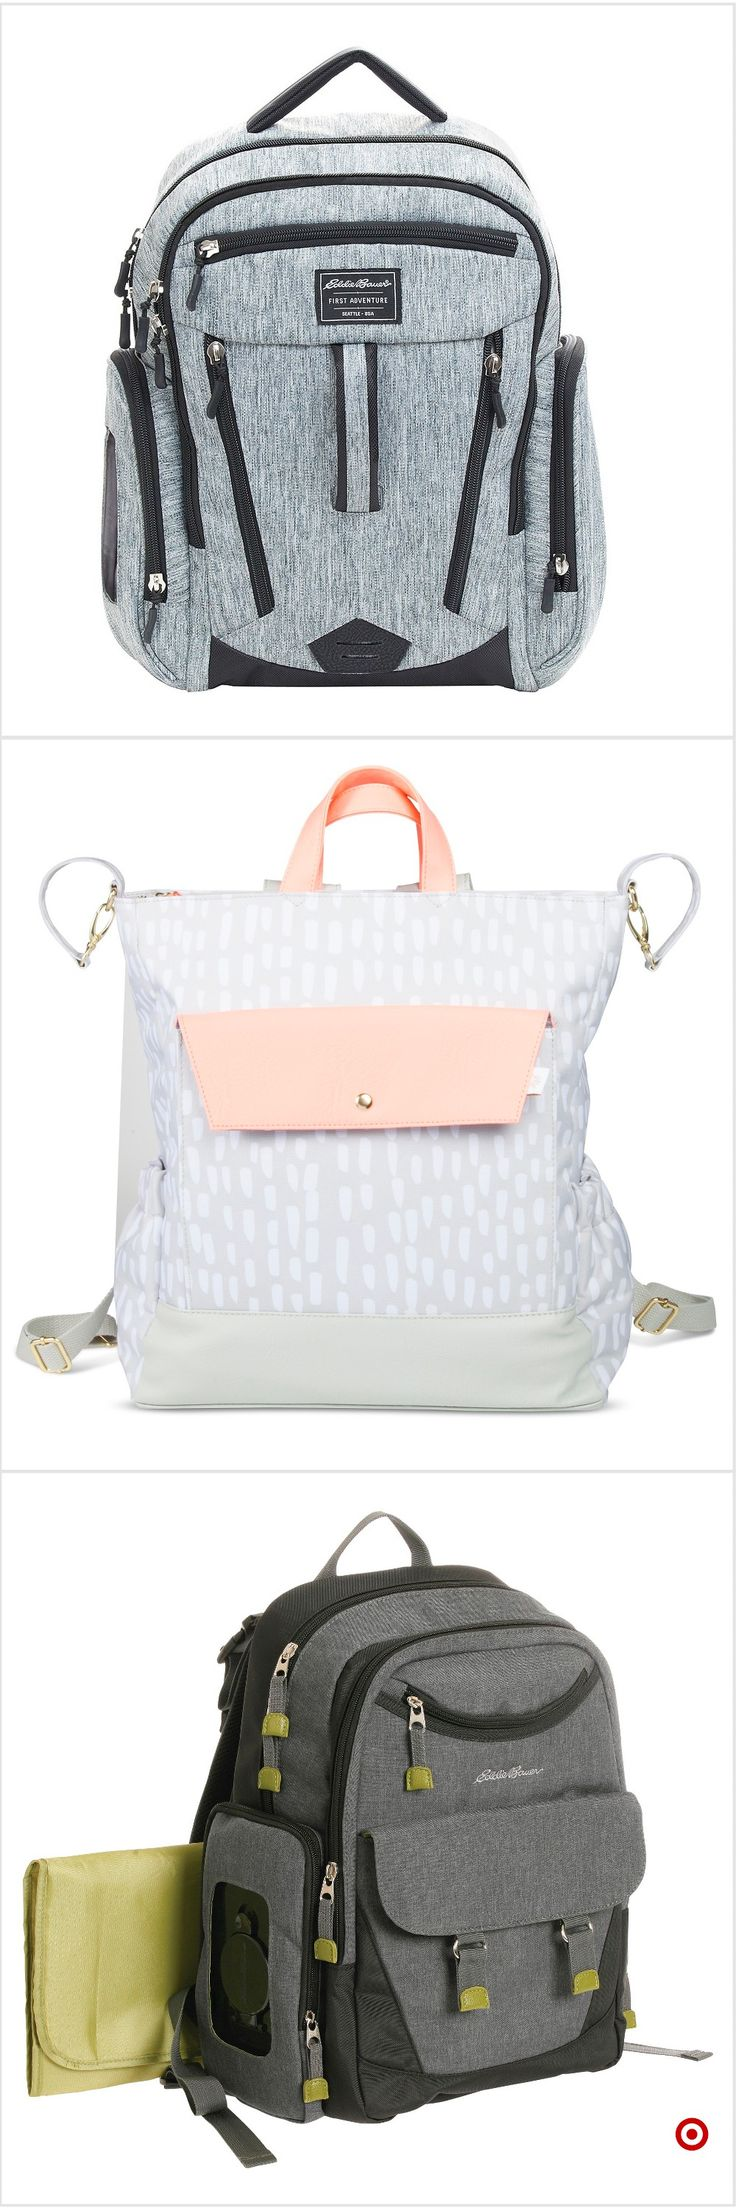 Shop Target for diaper bag you will love at great low prices. Free shipping on orders of $35+ or free same-day pick-up in store.